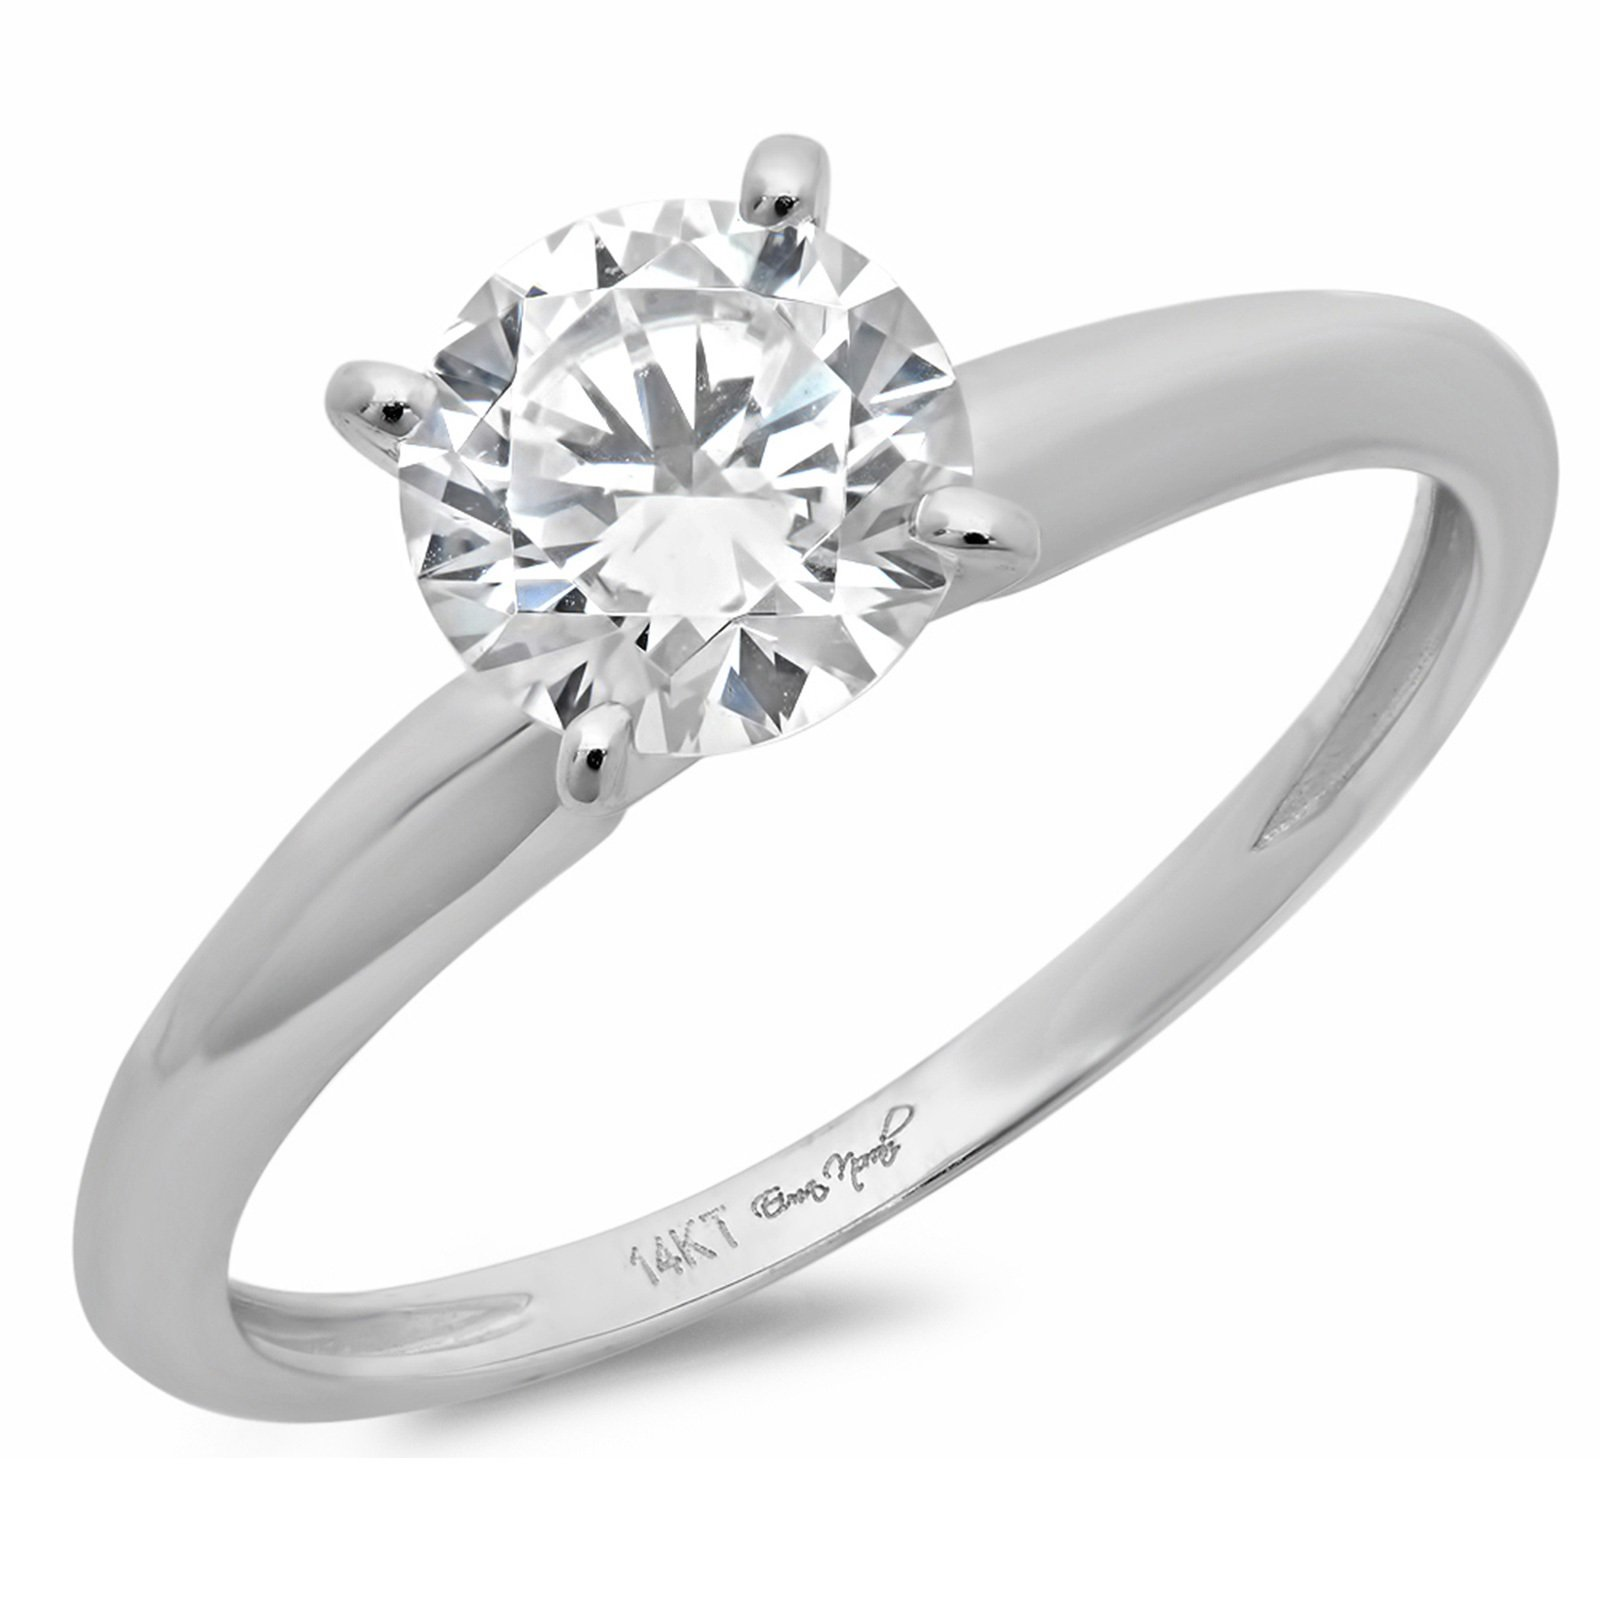 1.0 ct Brilliant Round Cut Solitaire Highest Quality Moissanite Ideal VVS1 D 4-Prong Engagement Wedding Bridal Promise Anniversary Ring in Solid Real 14k white Gold for Women